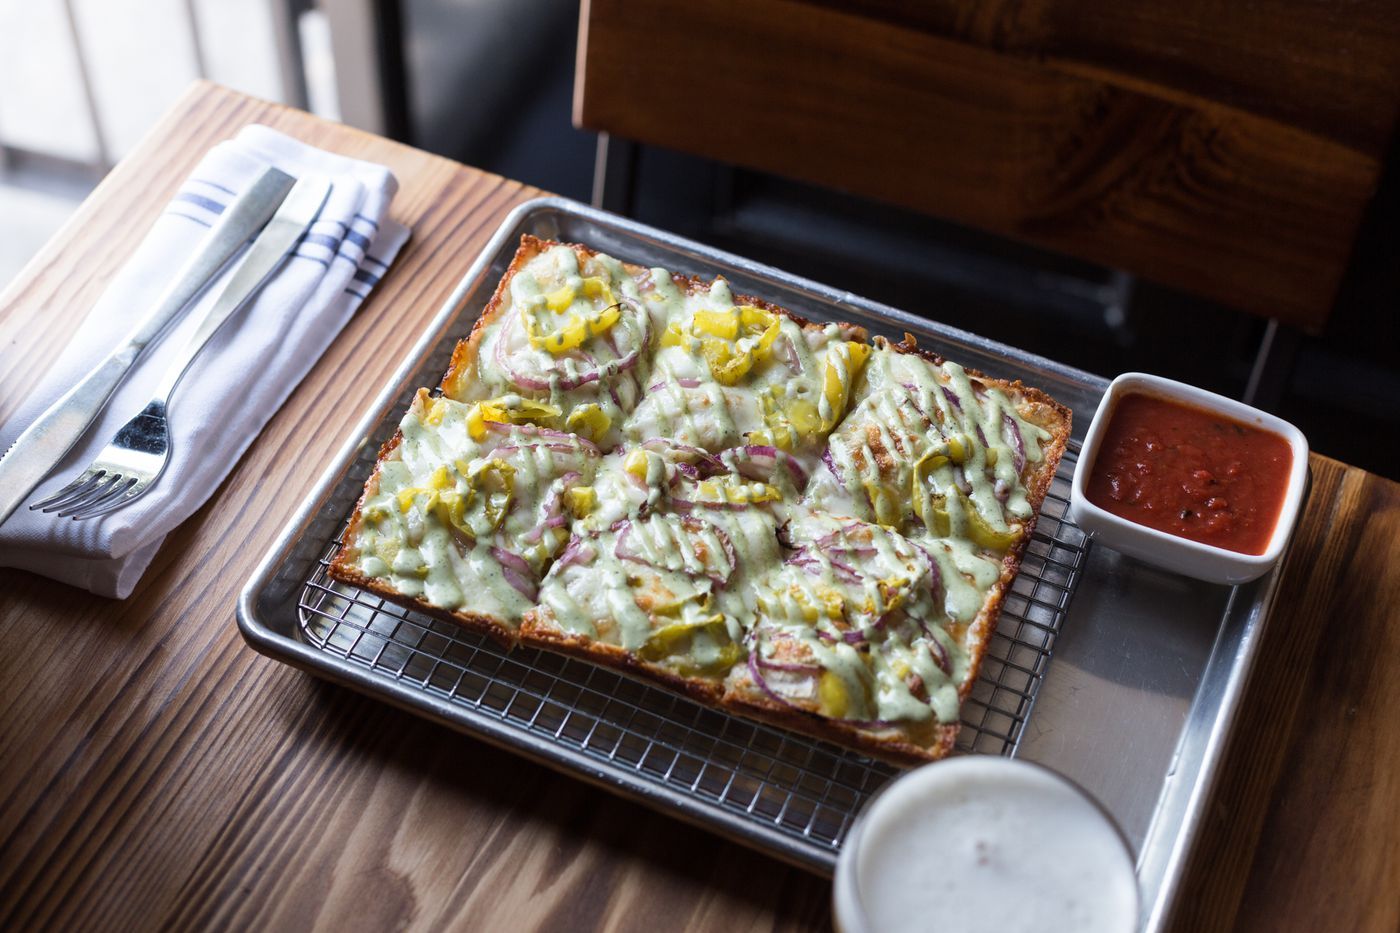 How Detroit's Square Pizza Became a Big Restaurant Trend - Eater